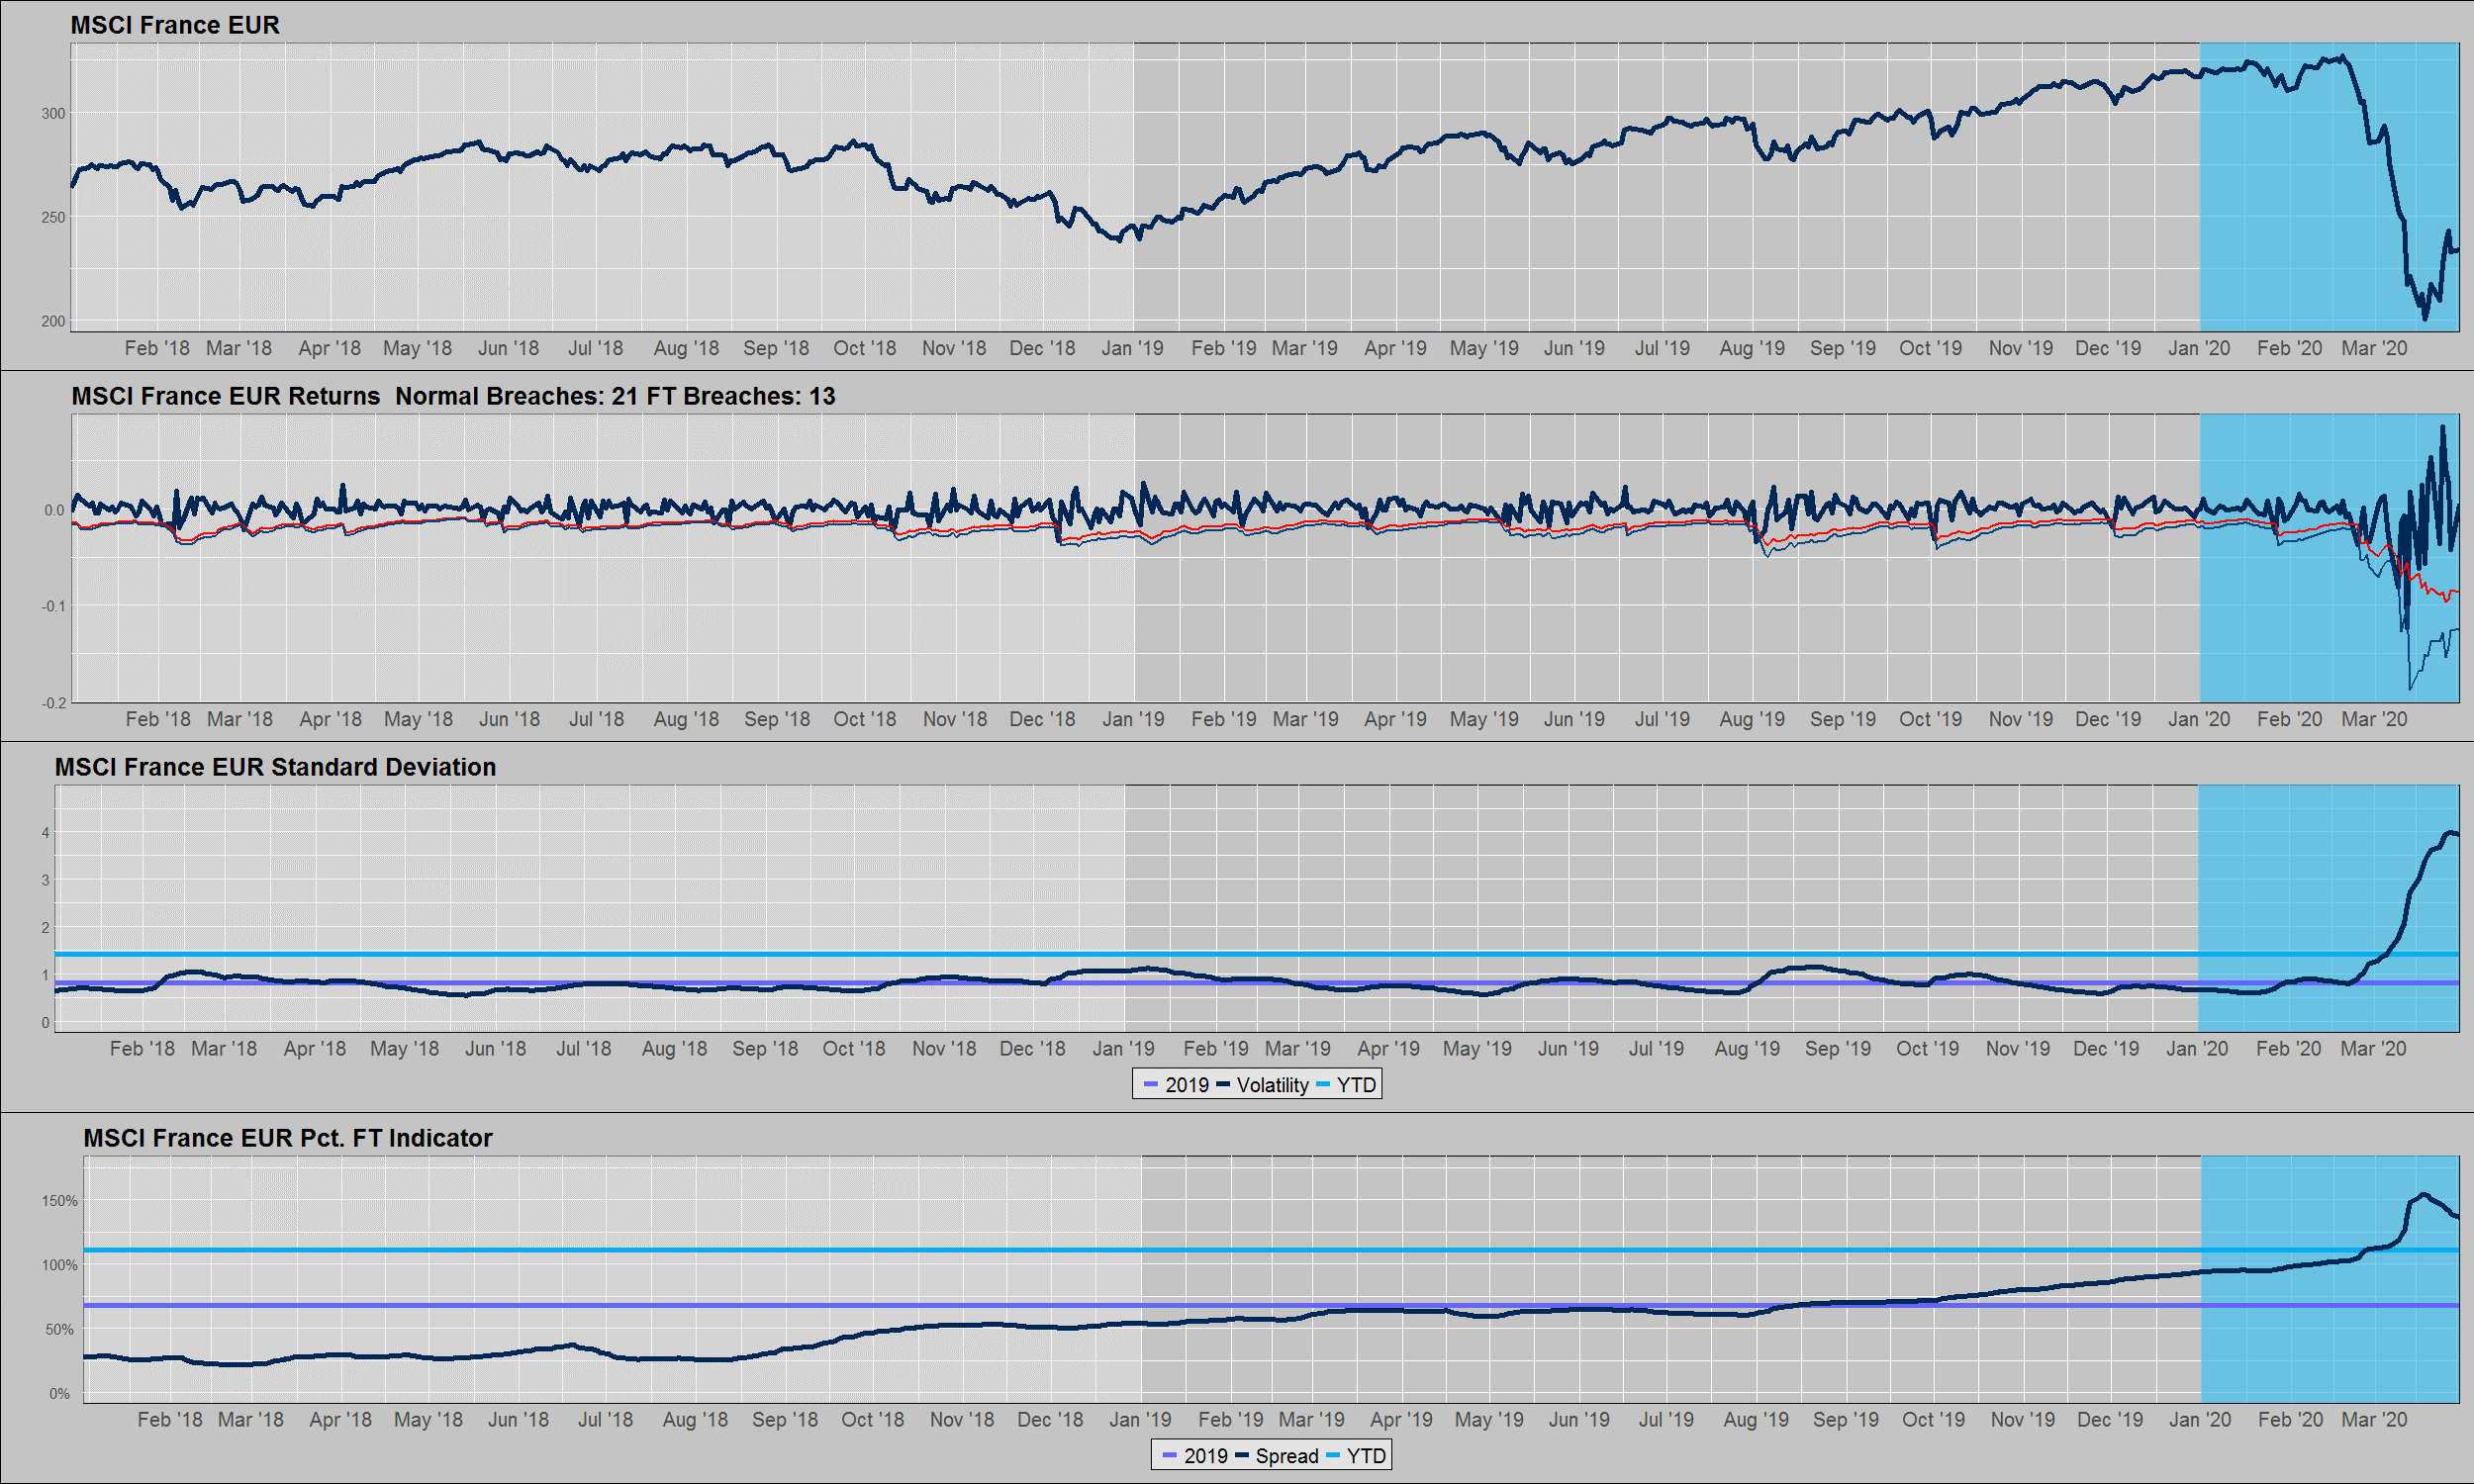 Figure 3: MSCI France Performance, Volatility, and Fat-Tail Indicator